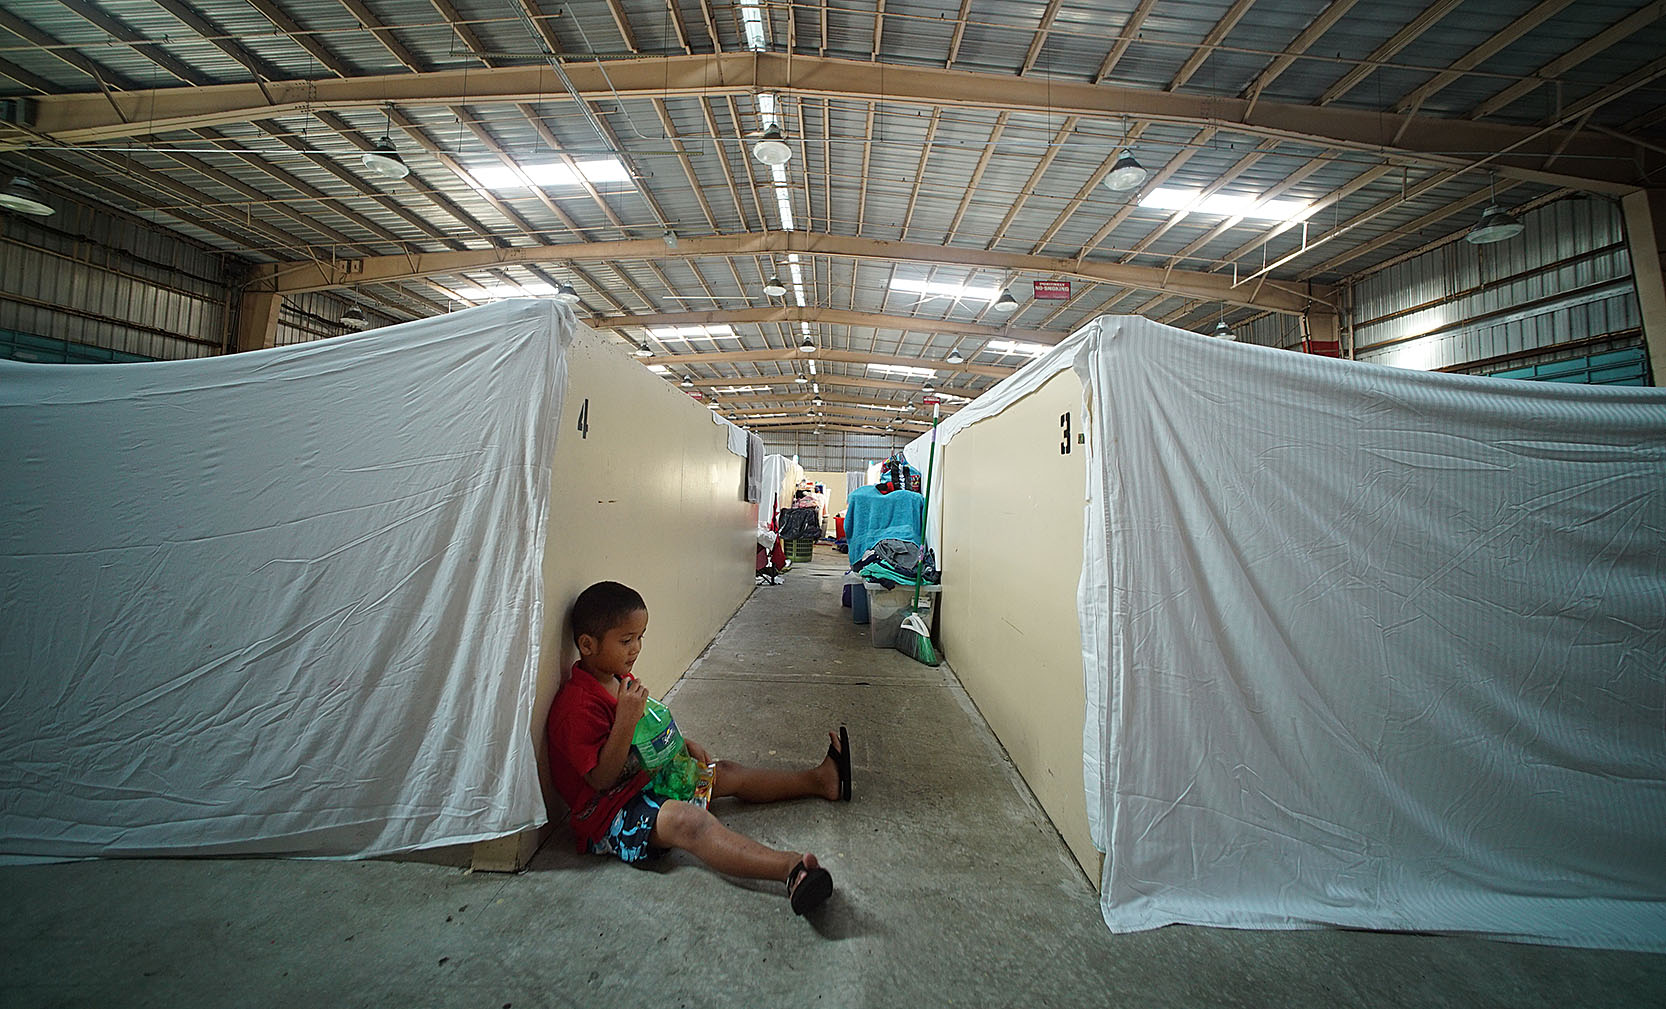 <p>Micronesian families often have a hard time finding affordable housing in expensive Honolulu.</p>